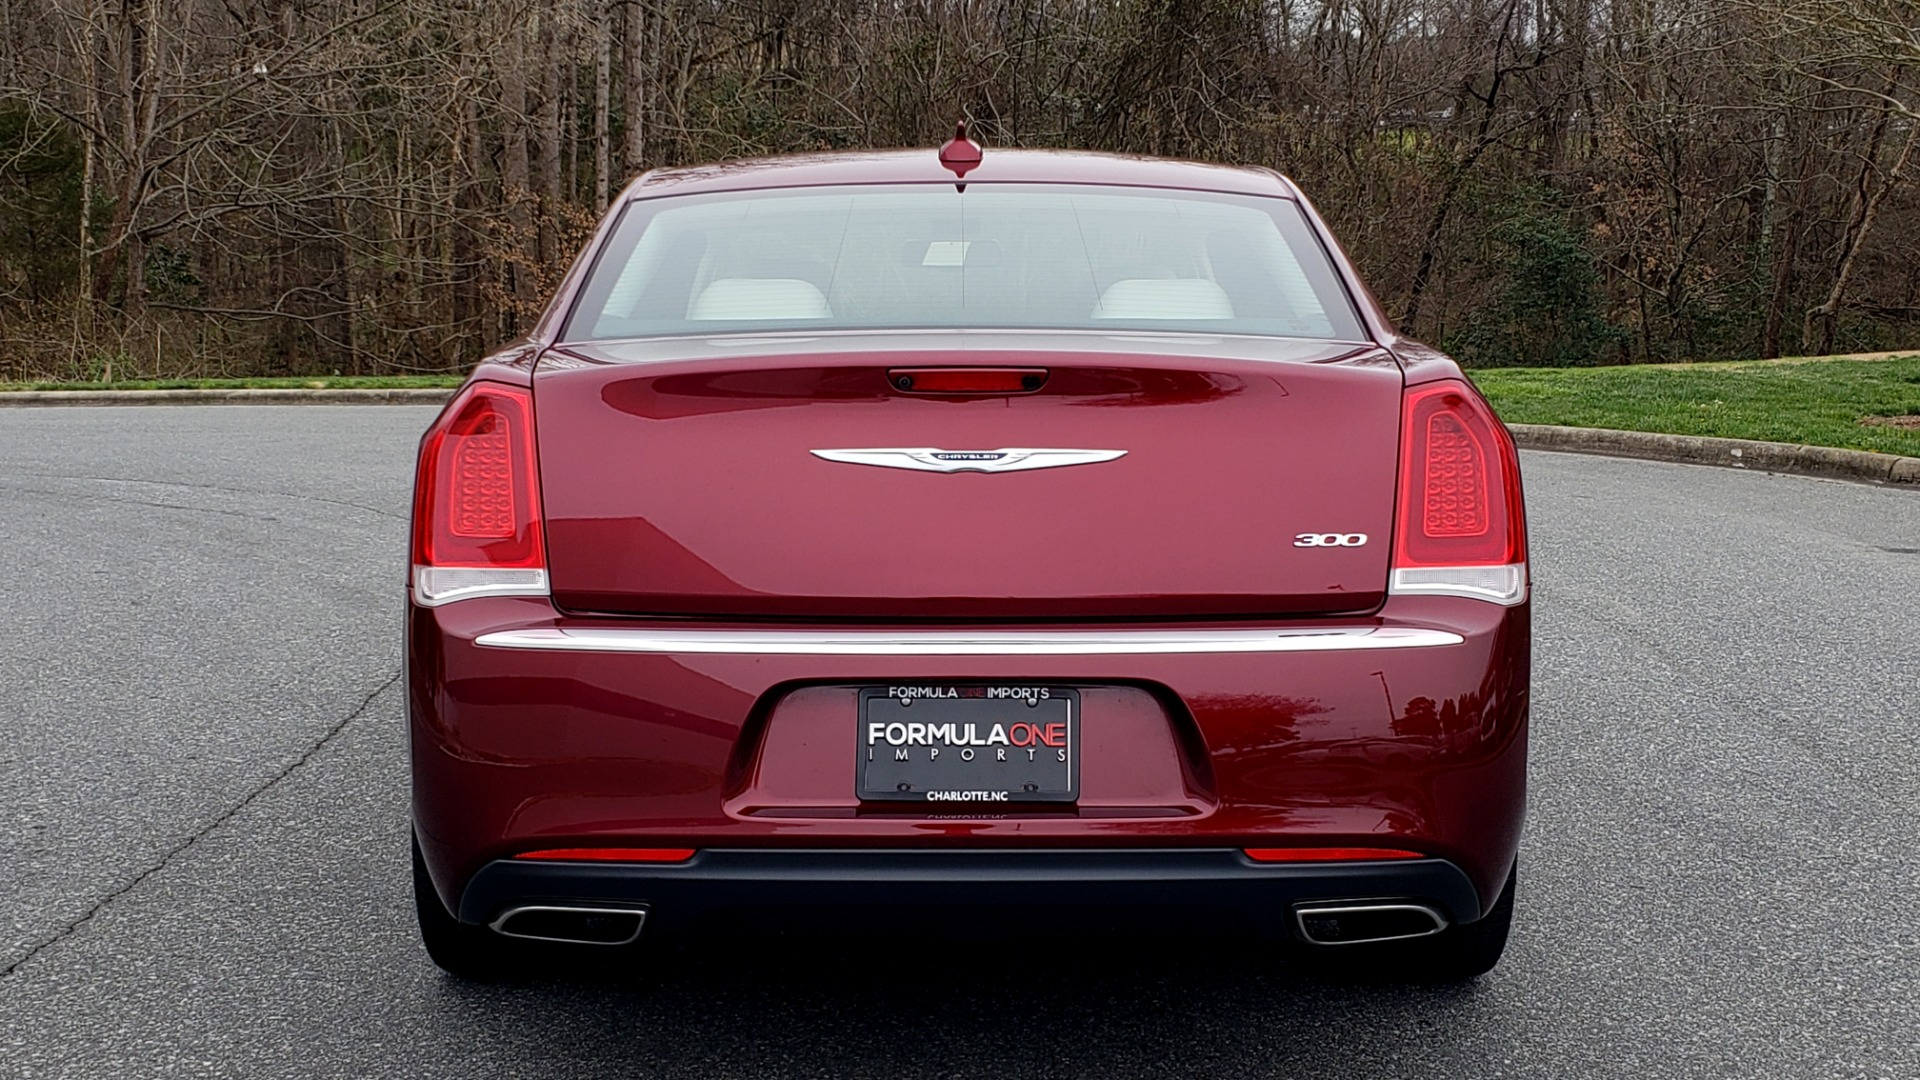 Used 2019 Chrysler 300 LIMITED / 3.6L V6 / 8-SPD AUTO / LEATHER / REARVIEW for sale Sold at Formula Imports in Charlotte NC 28227 32